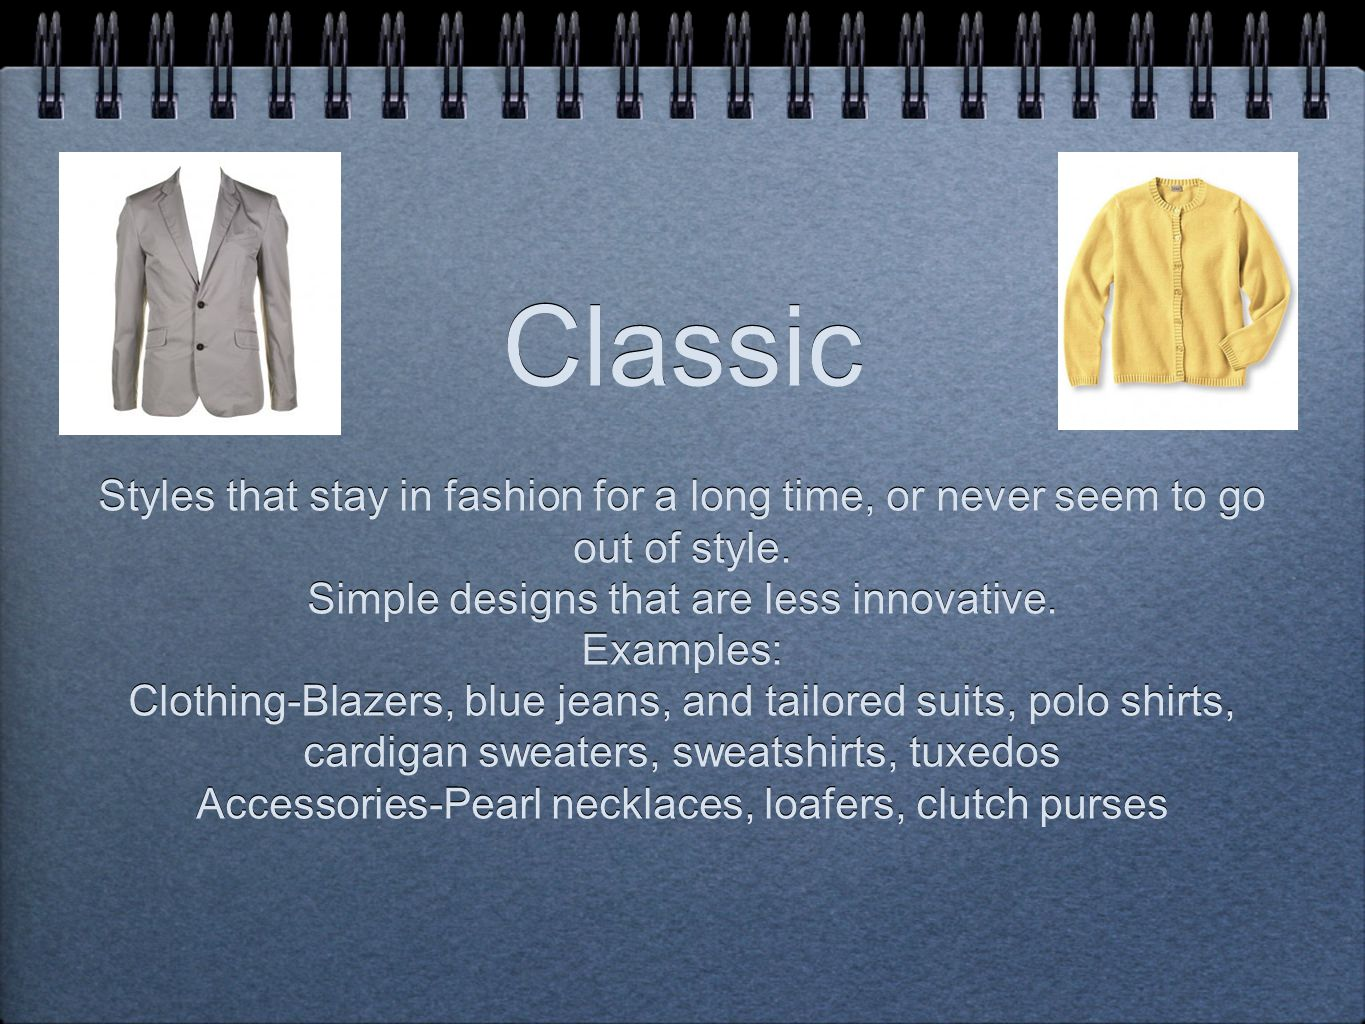 Classic Styles that stay in fashion for a long time, or never seem to go out of style.